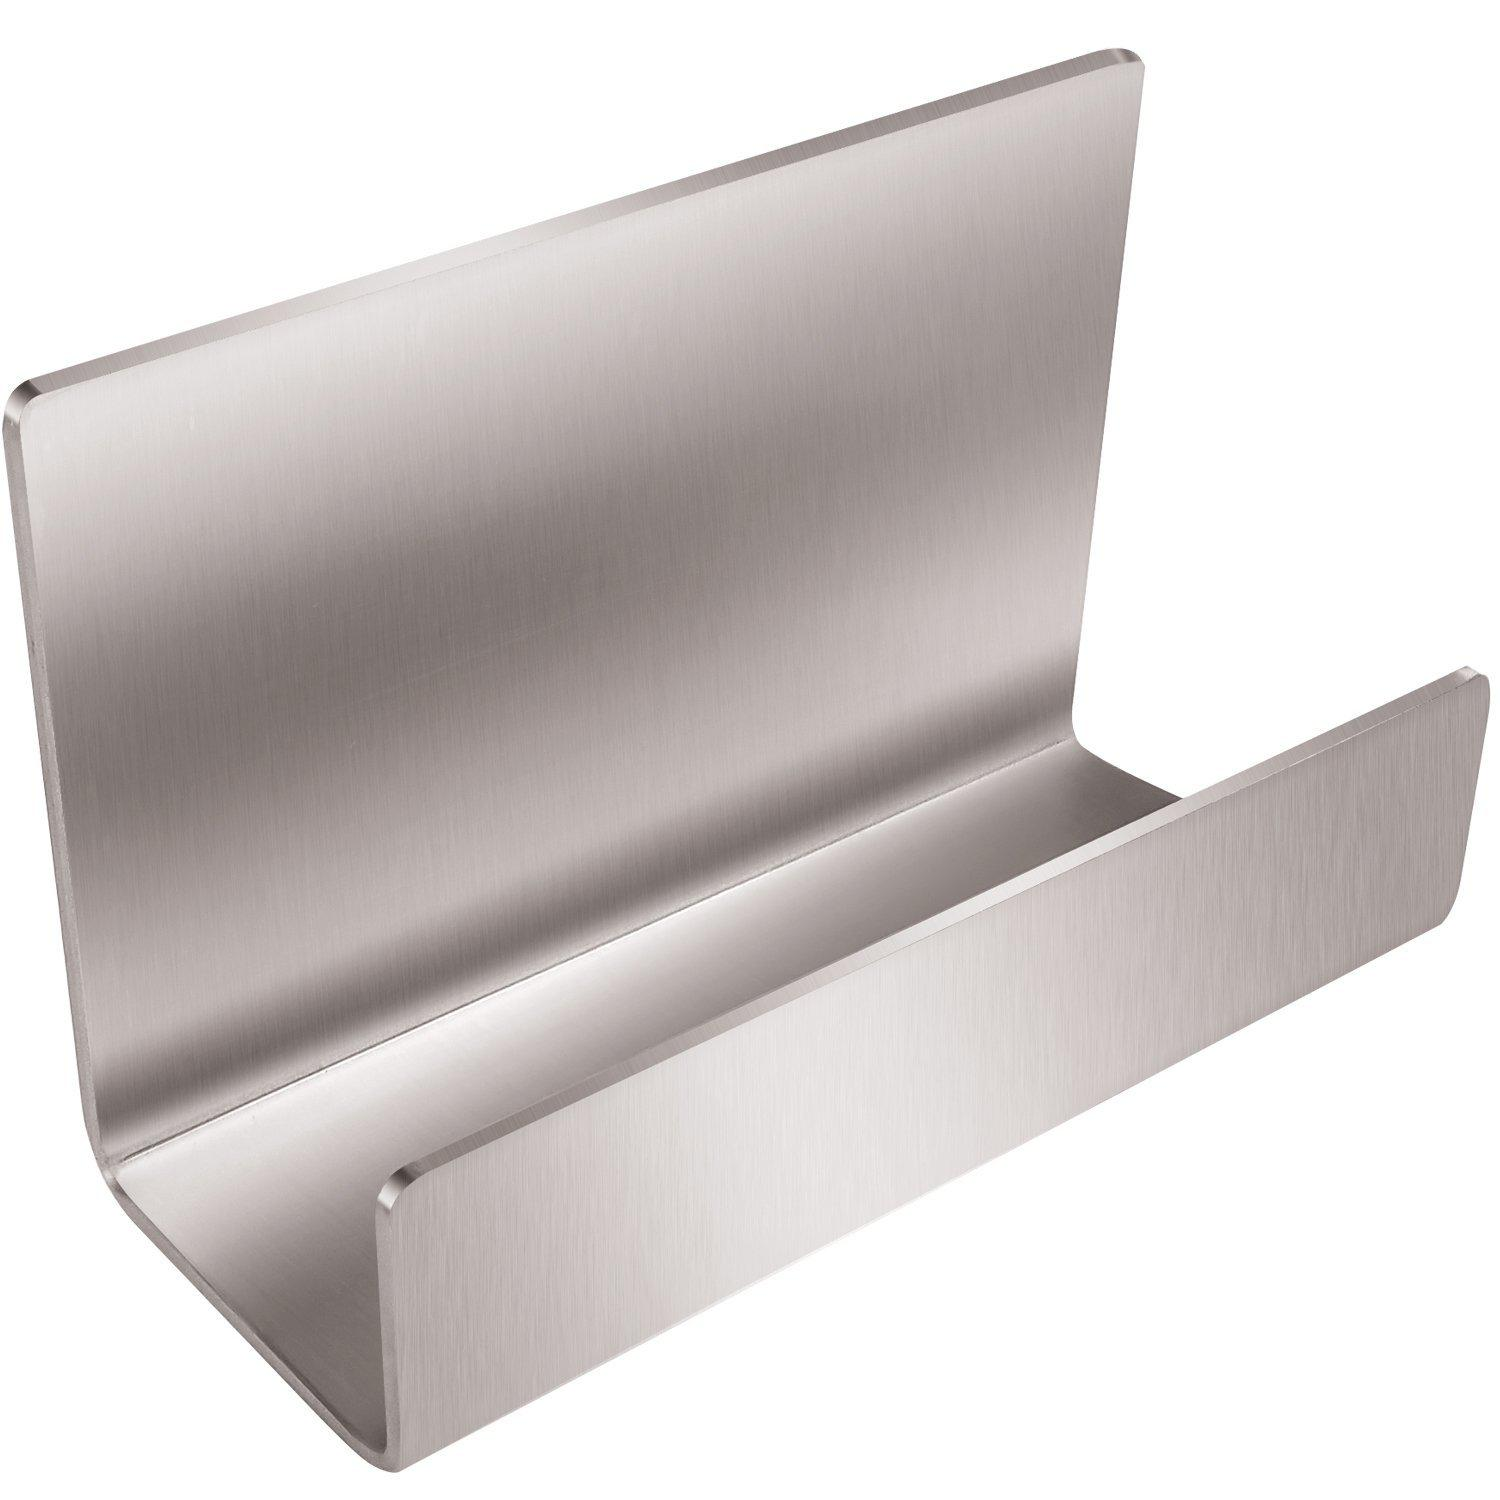 Apor Stainless Steel Business Card Holder